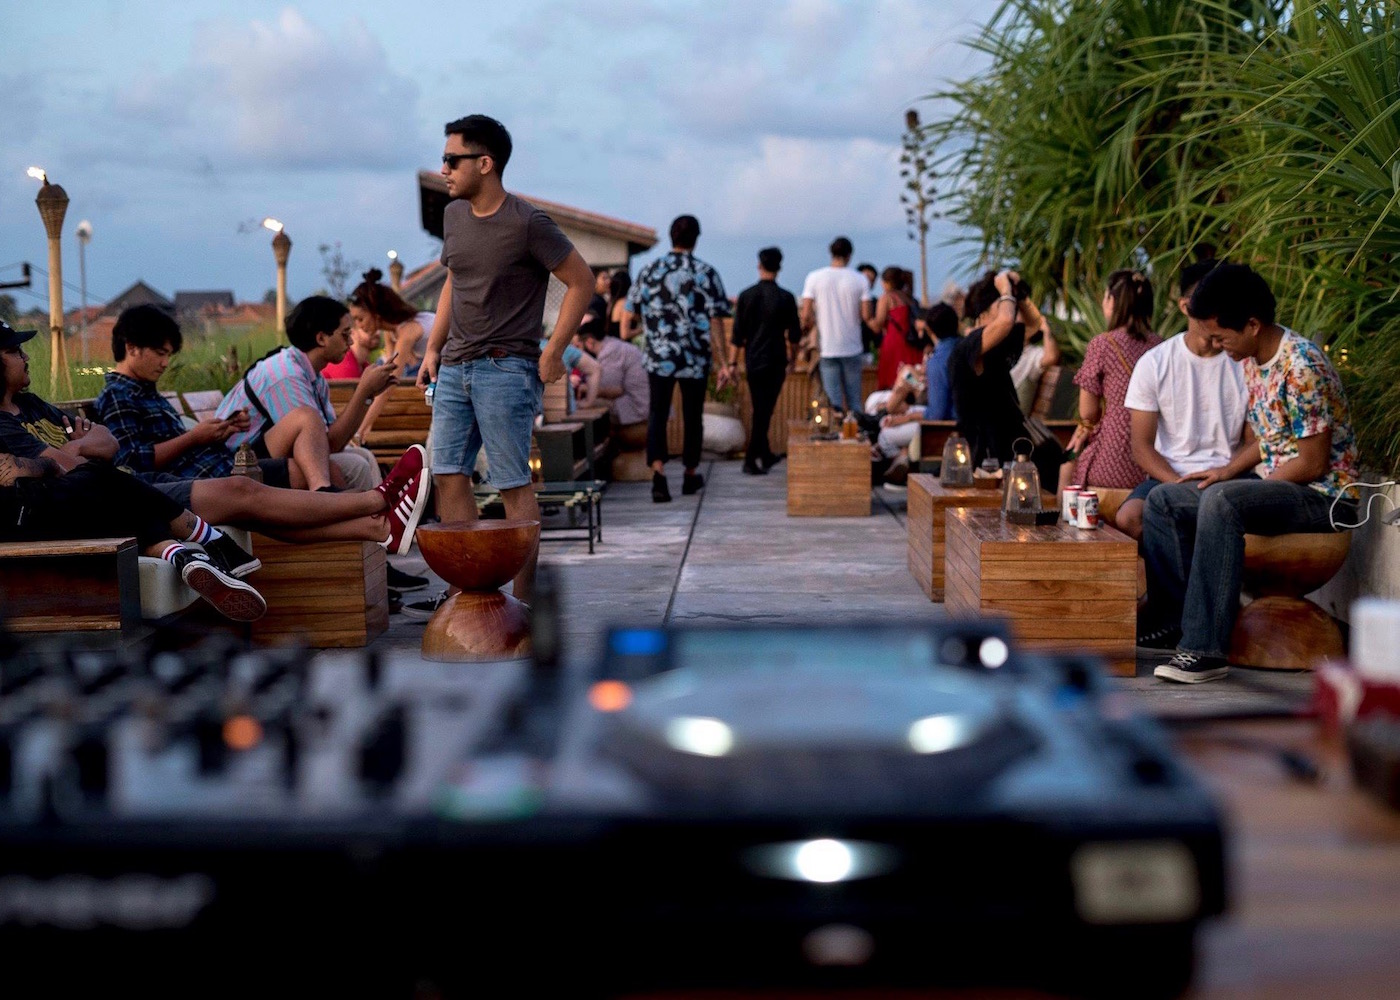 Rooftop cocktail bar at The Slow boutique hotel in Canggu, Bali, Indonesia